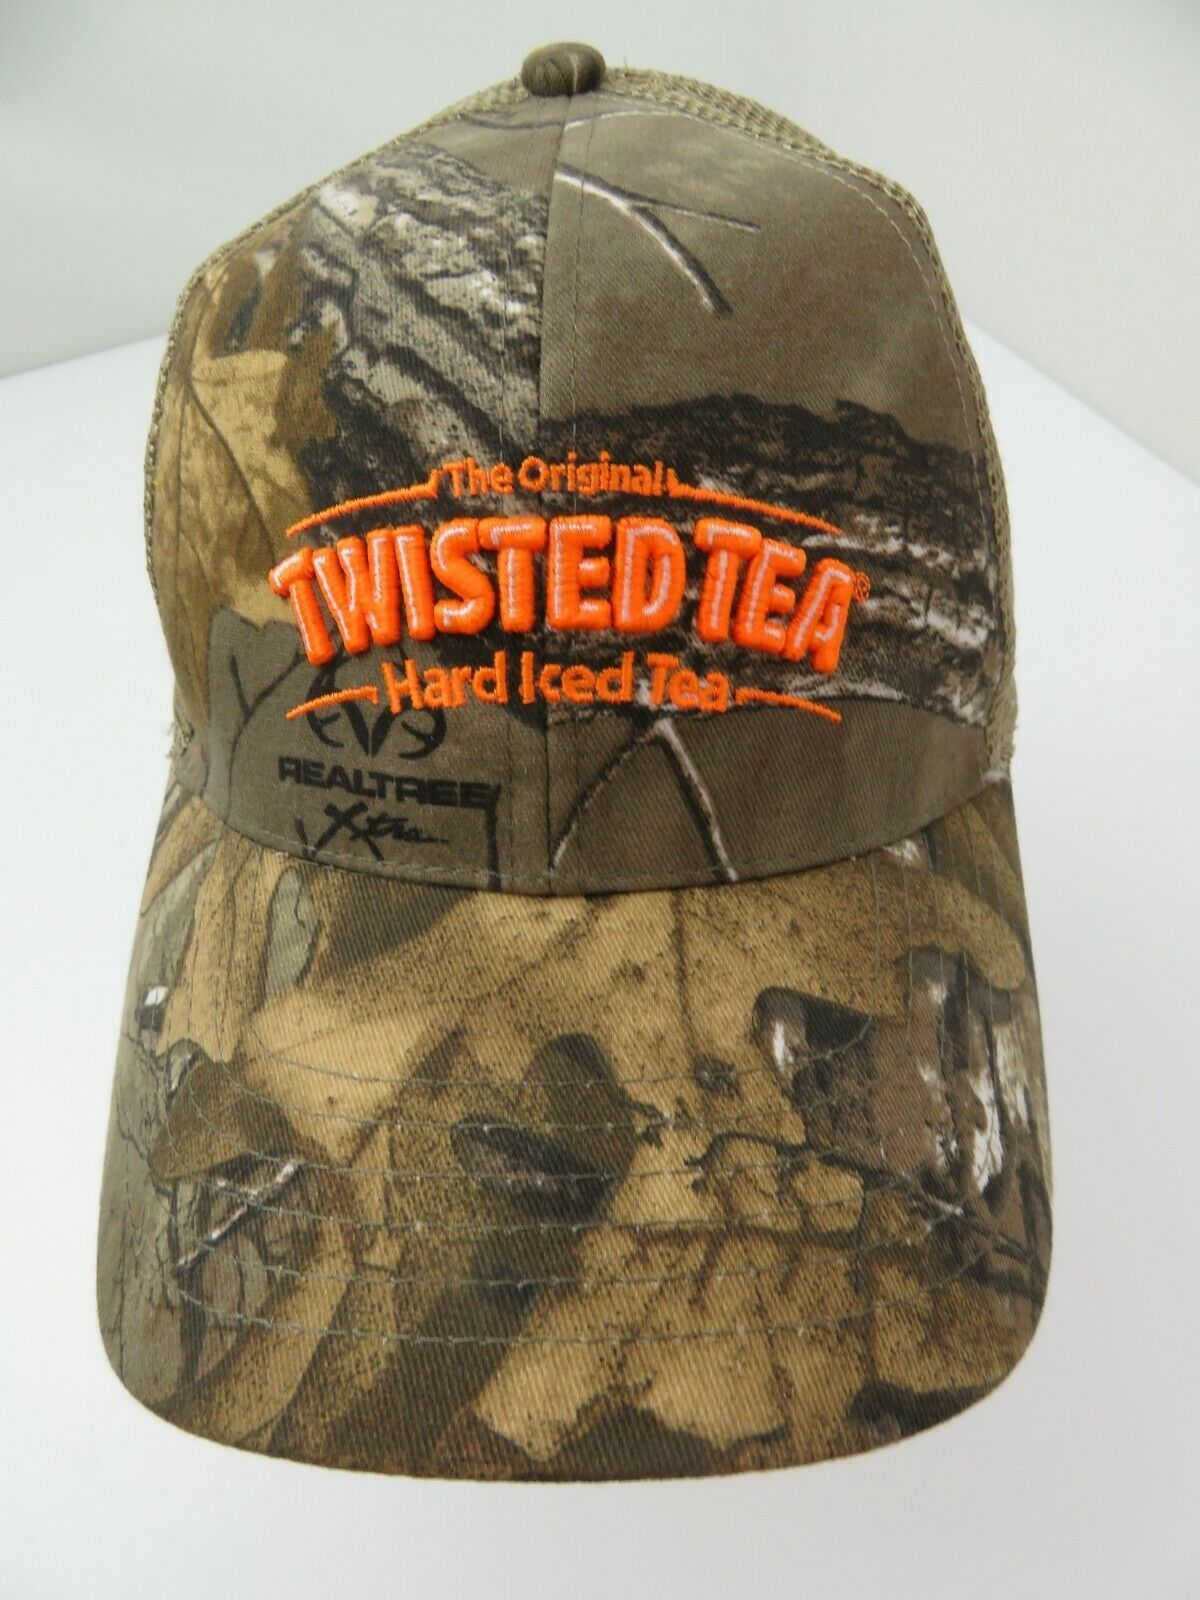 Primary image for Twisted Tea Hard Iced Tea Realtree Camouflage Snapback Adult Cap Hat